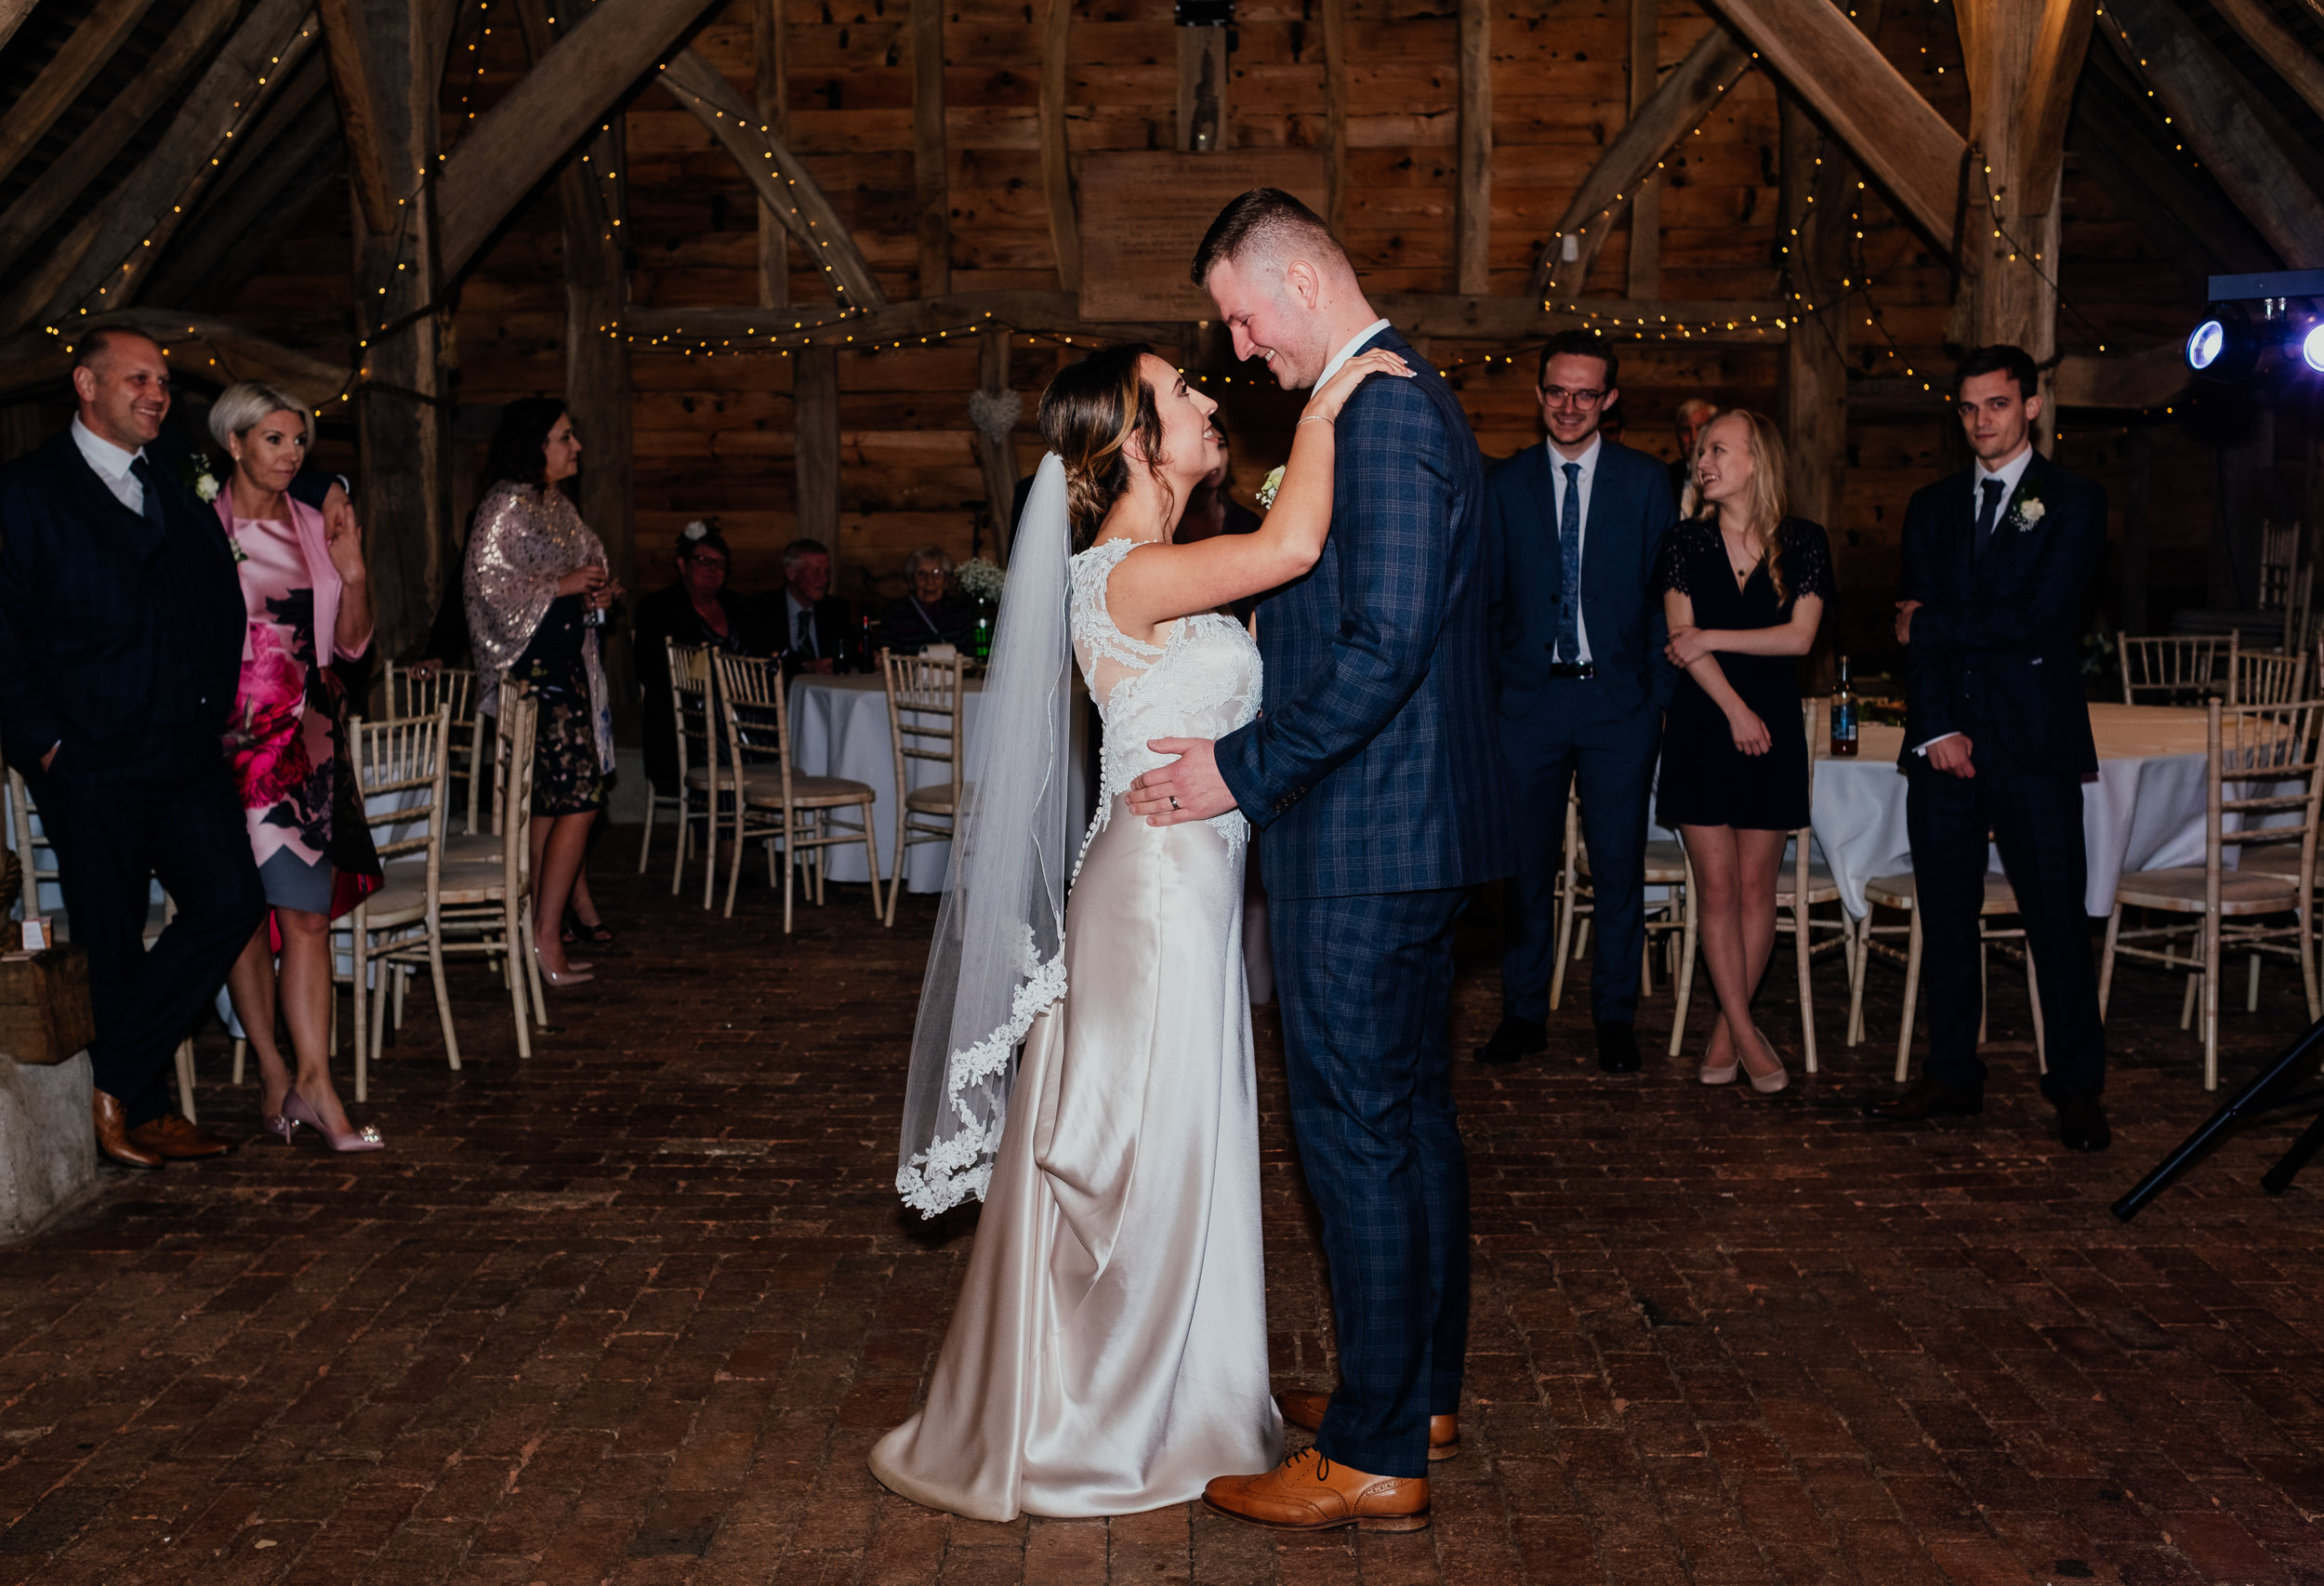 First dance at Gildings Barn wedding